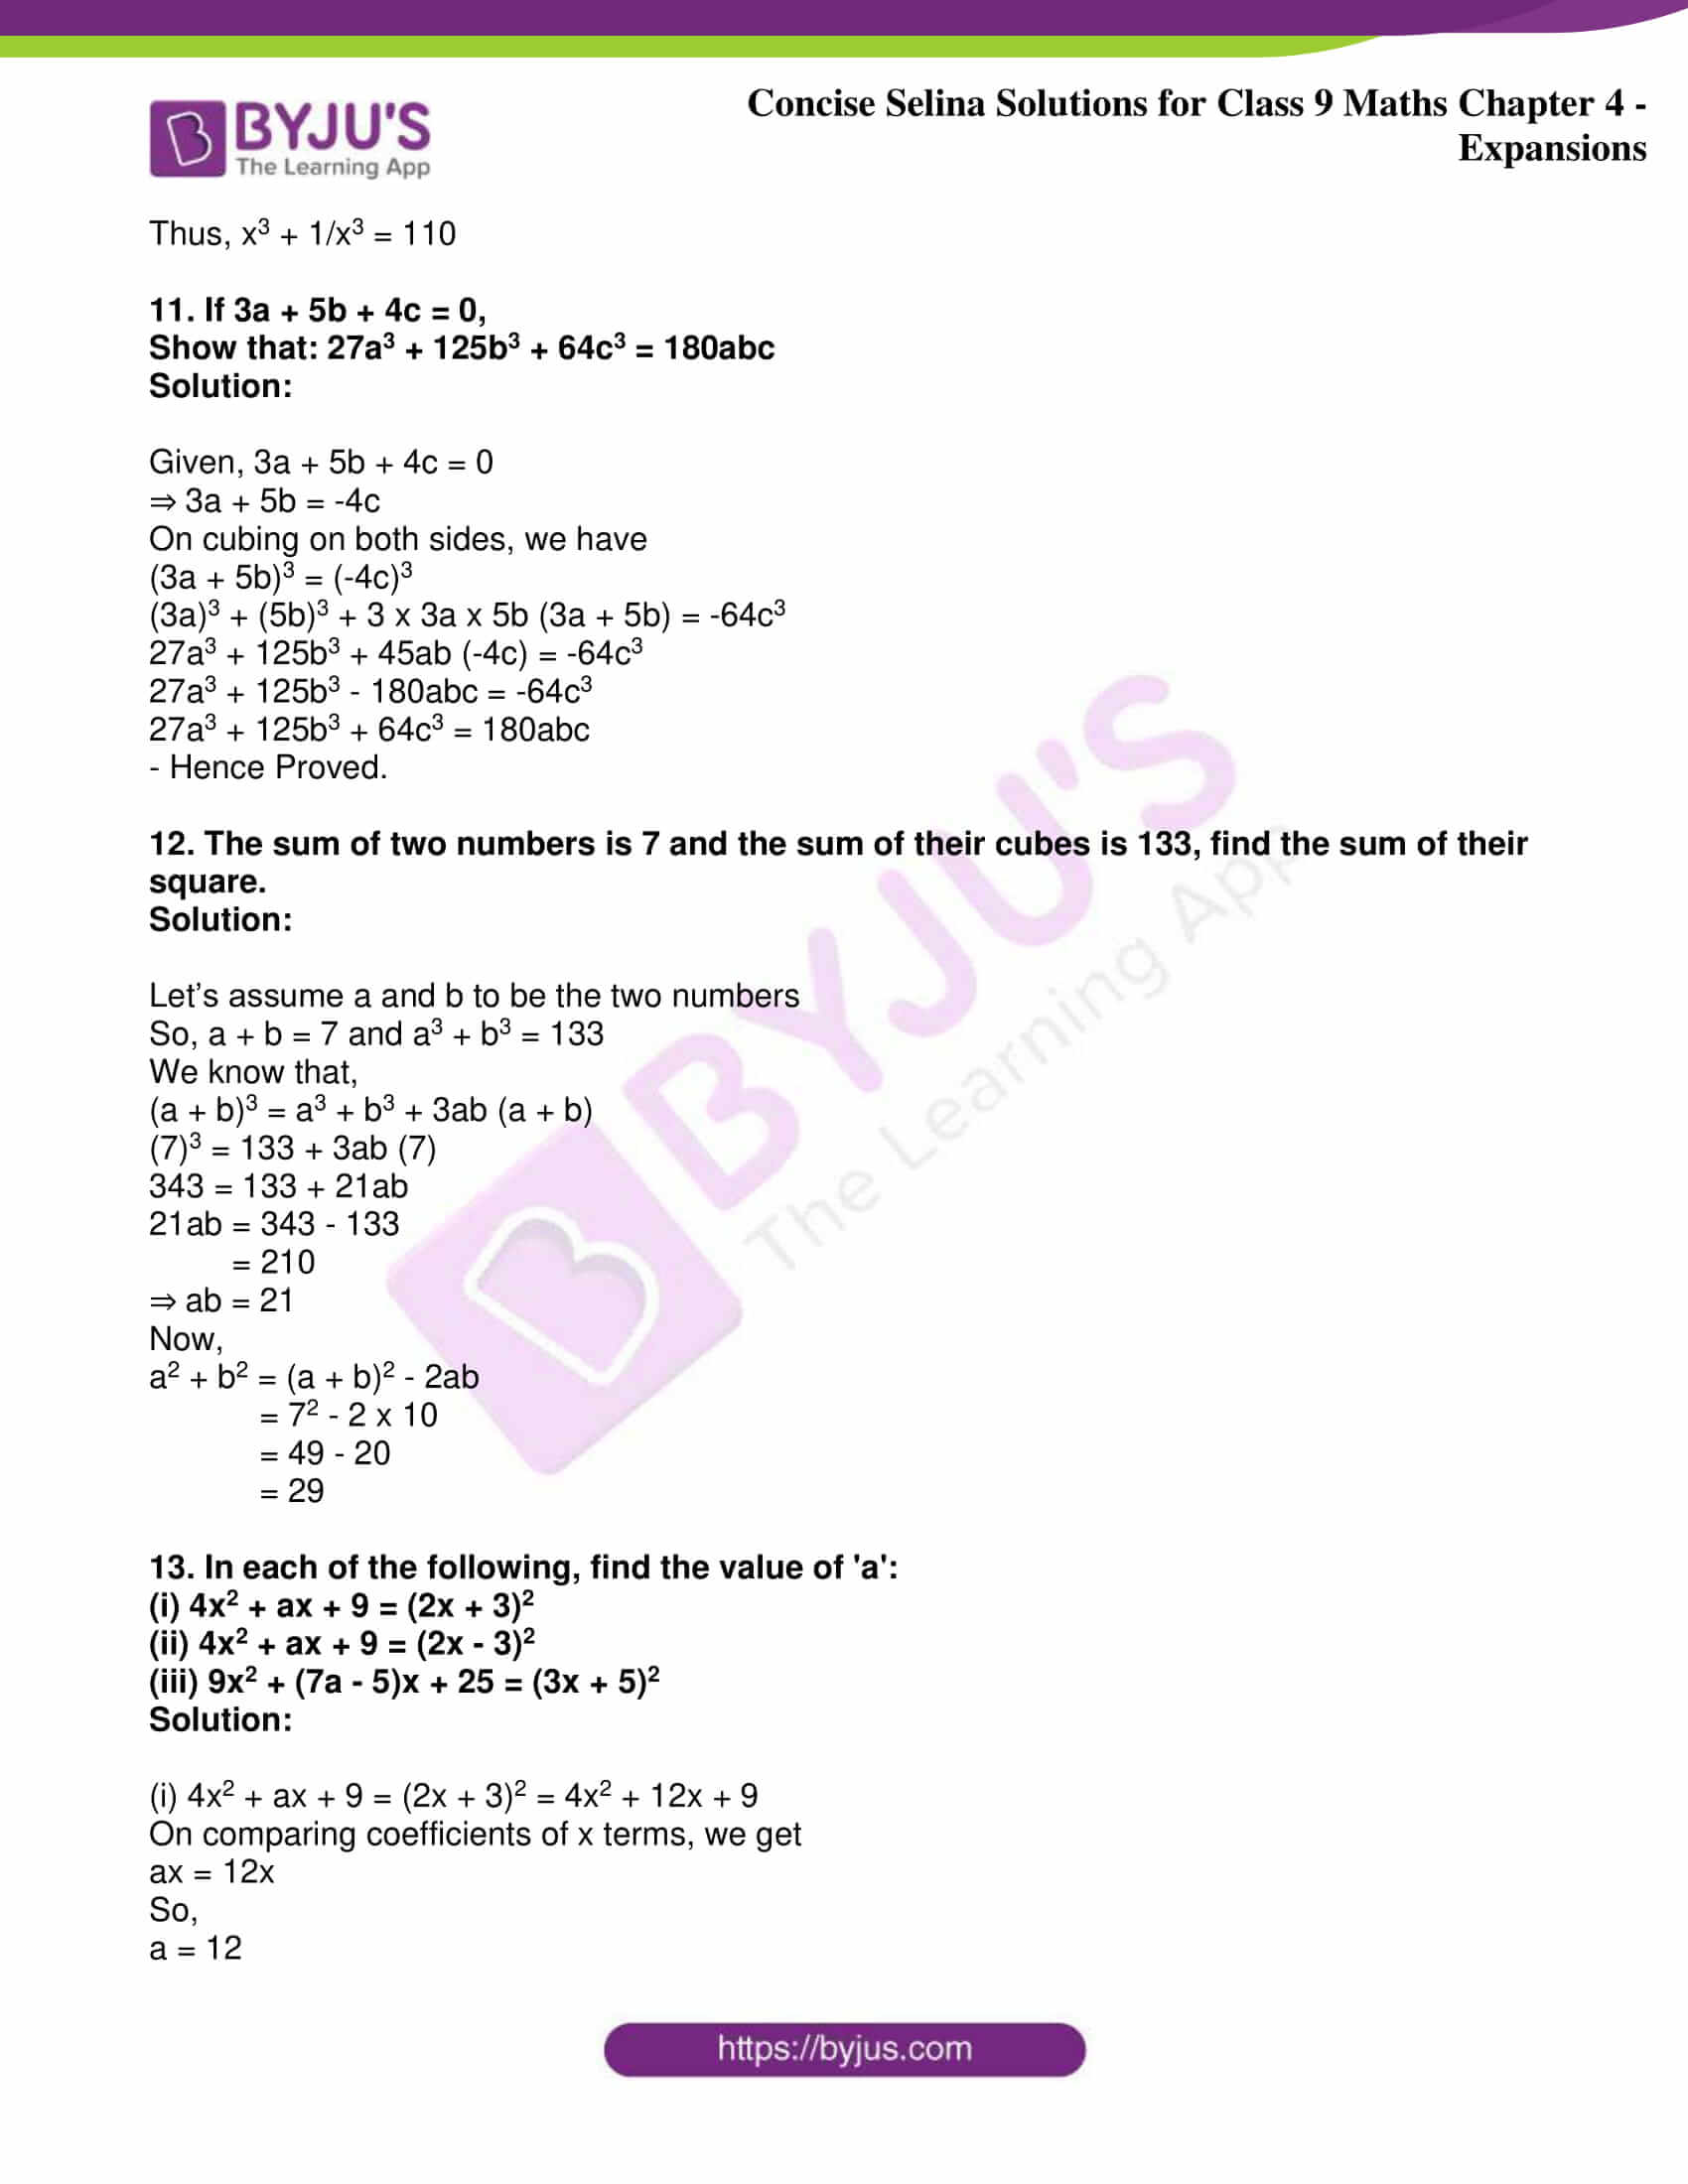 icse class 9 maths may10 selina solutions chapter 4 expansions 26